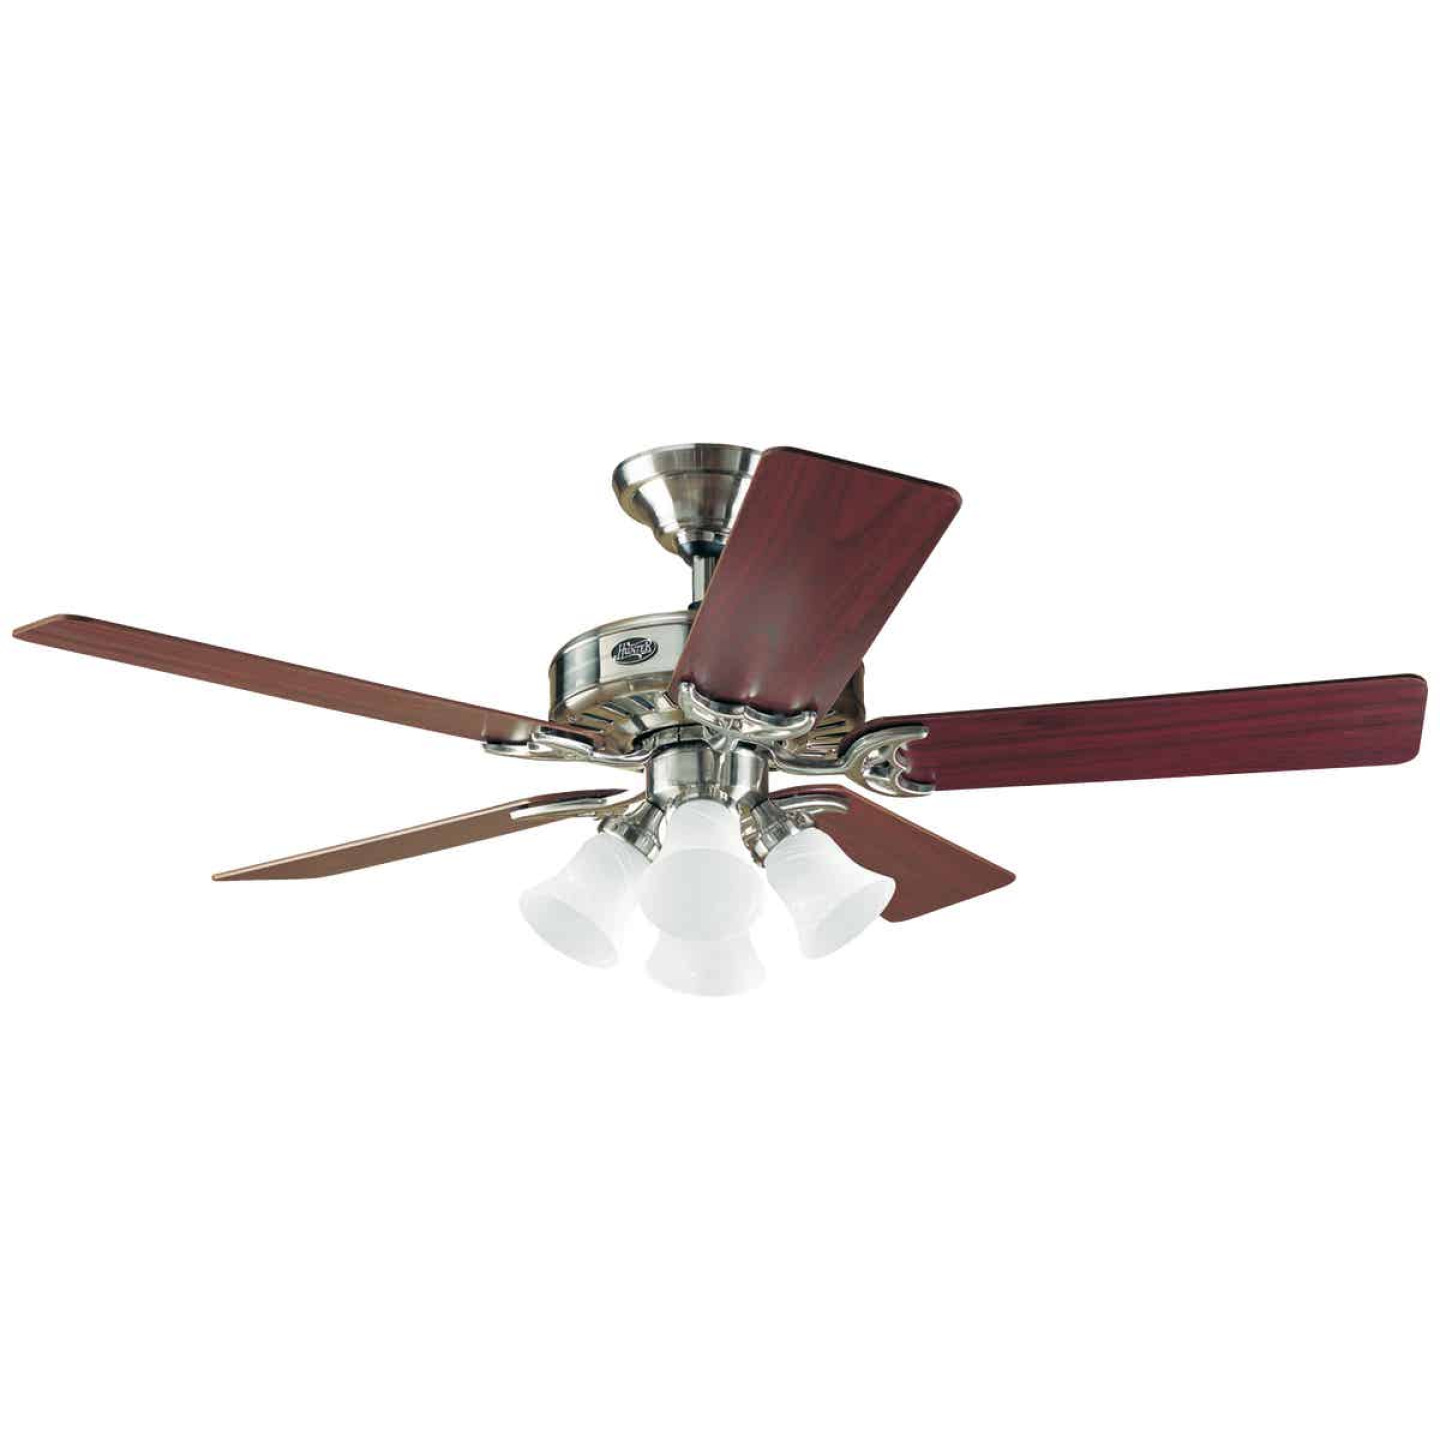 Hunter Studio 52 In. Brushed Nickel Ceiling Fan with Light Kit Image 1